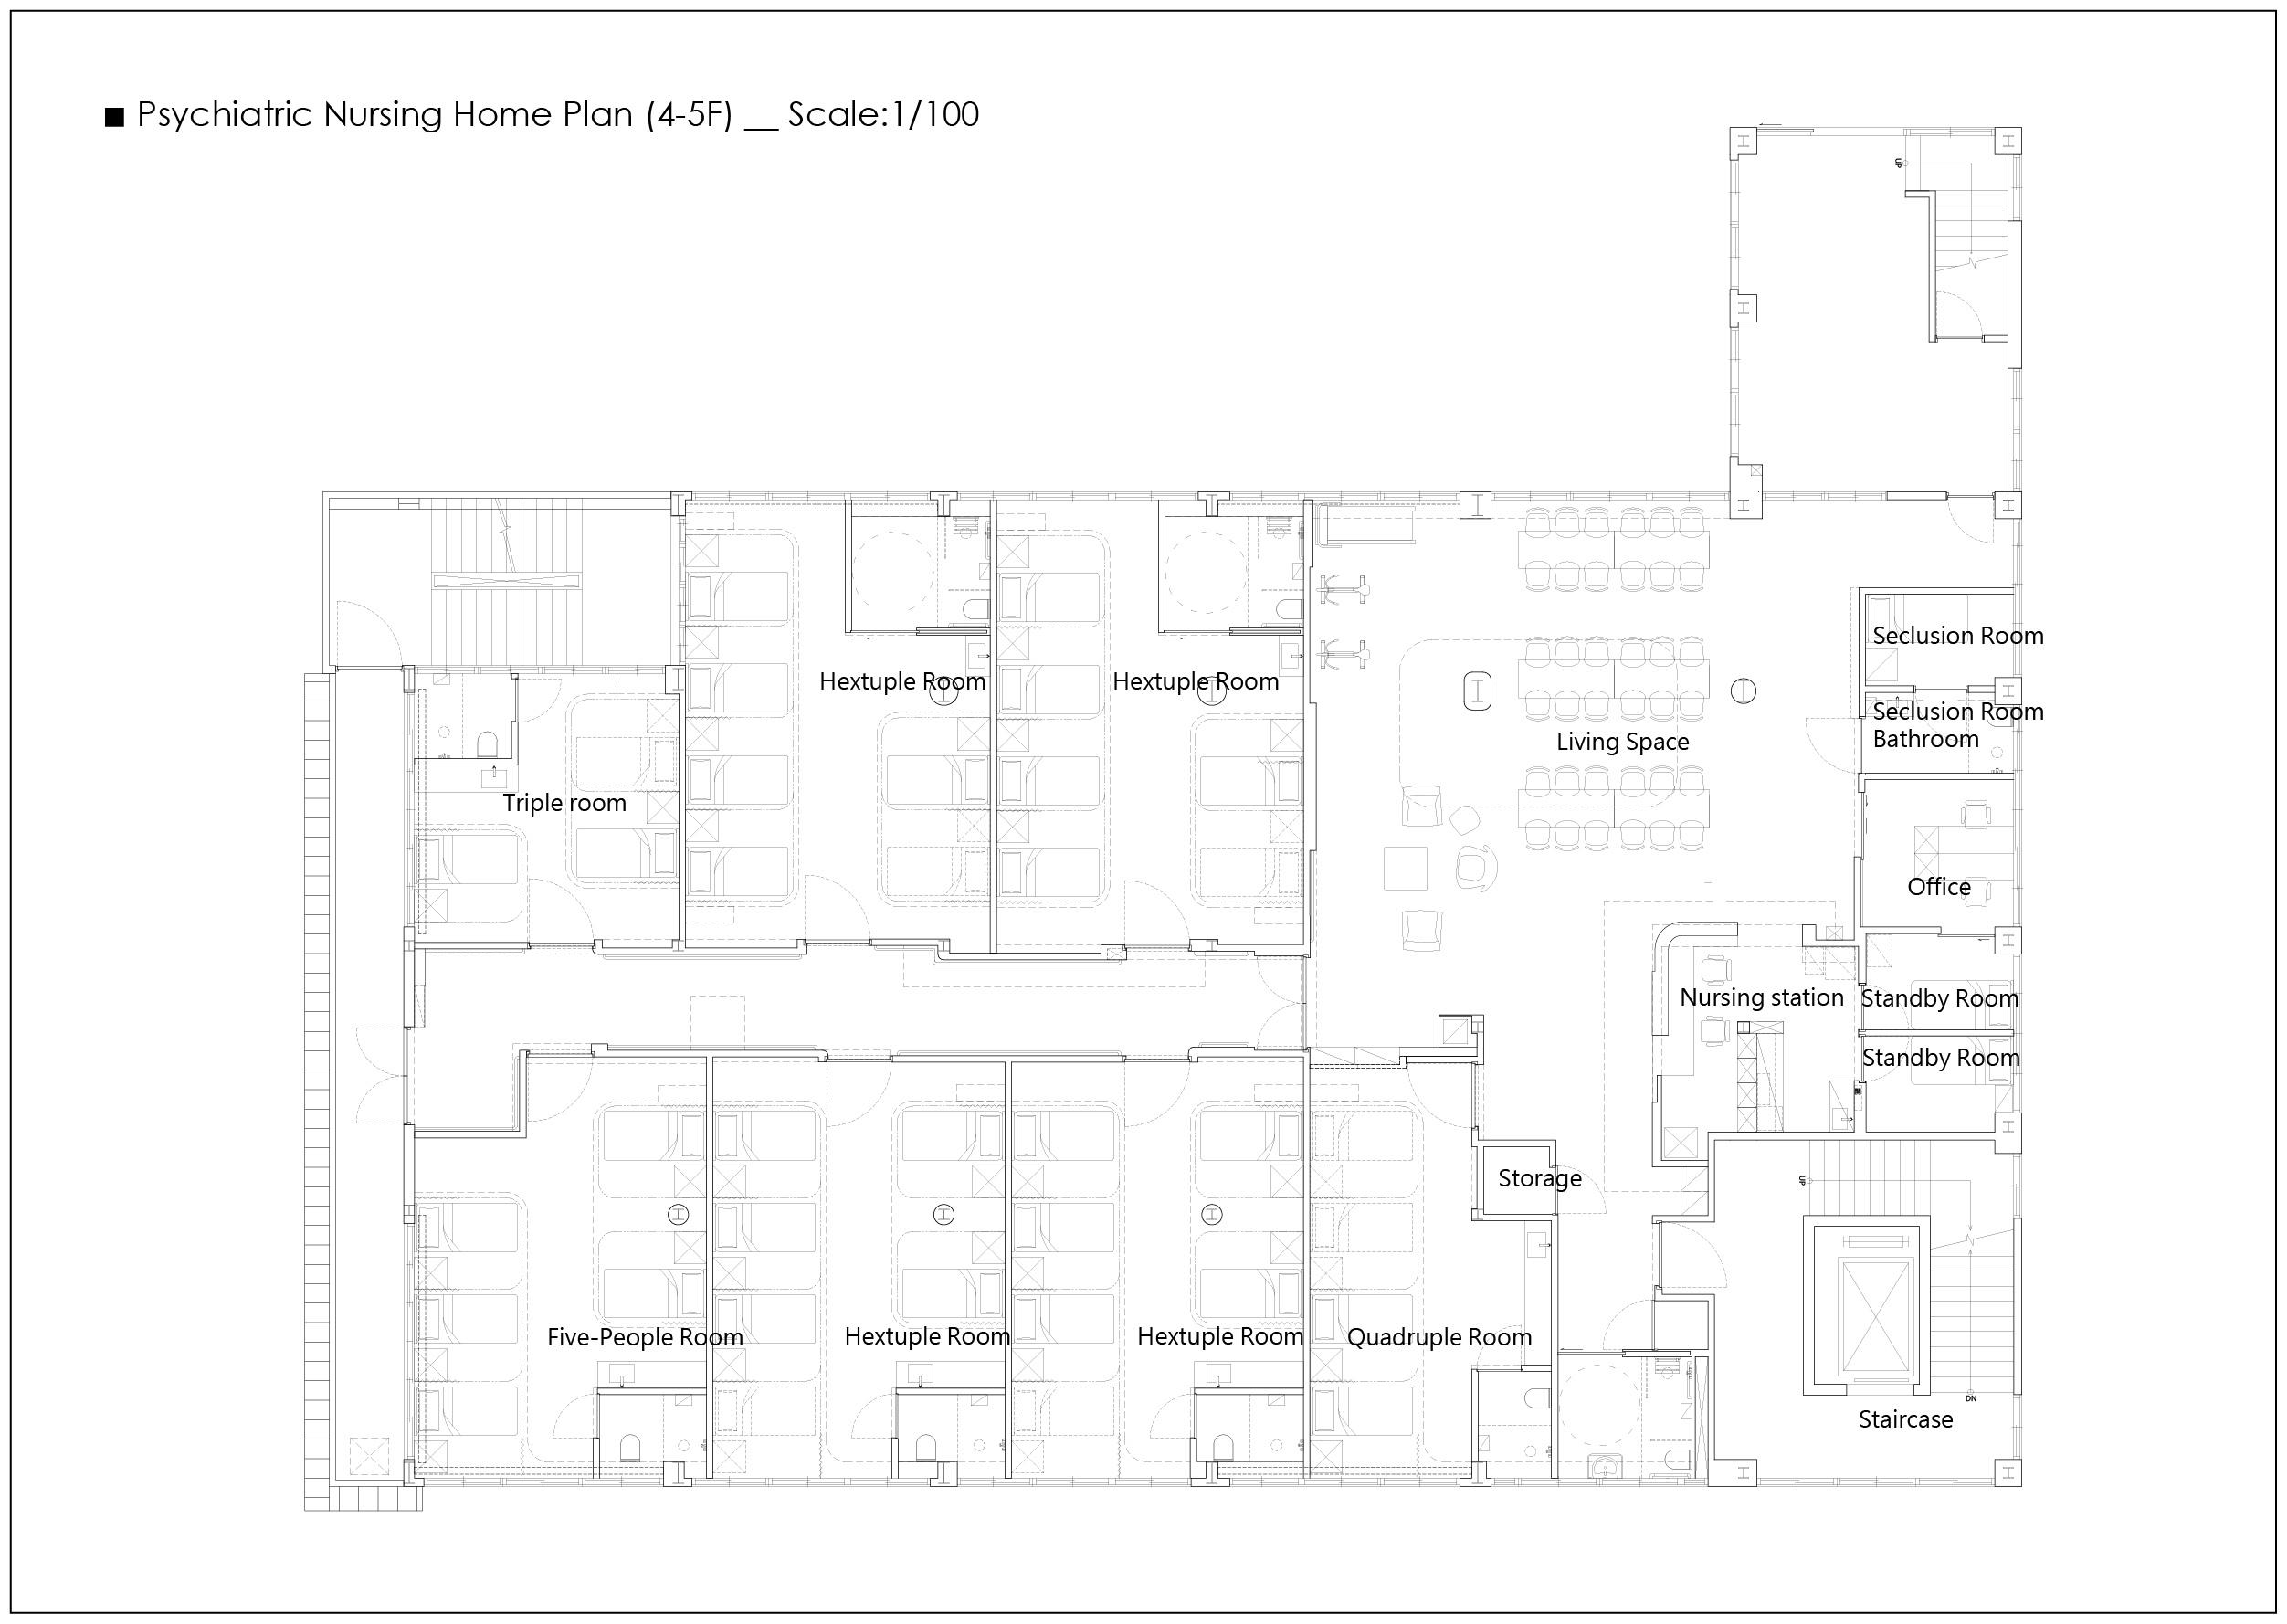 12_Inpatient Building 4-5F Plan Wooyo Architecture}